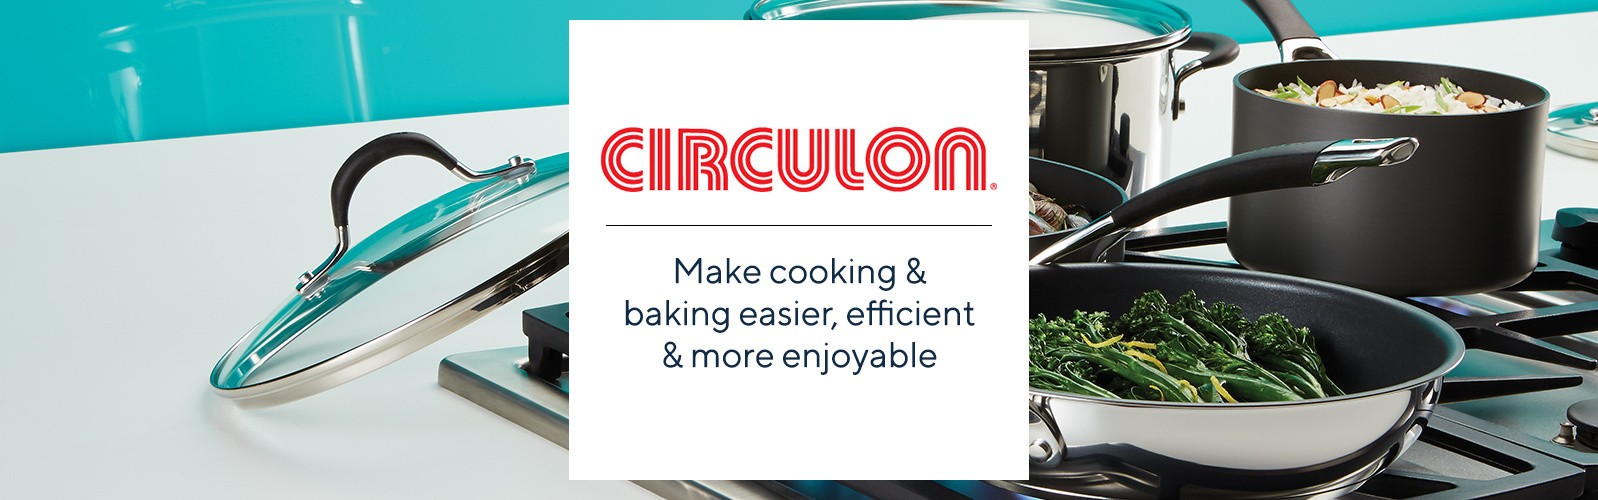 Make cooking & baking easier, efficient & more enjoyable